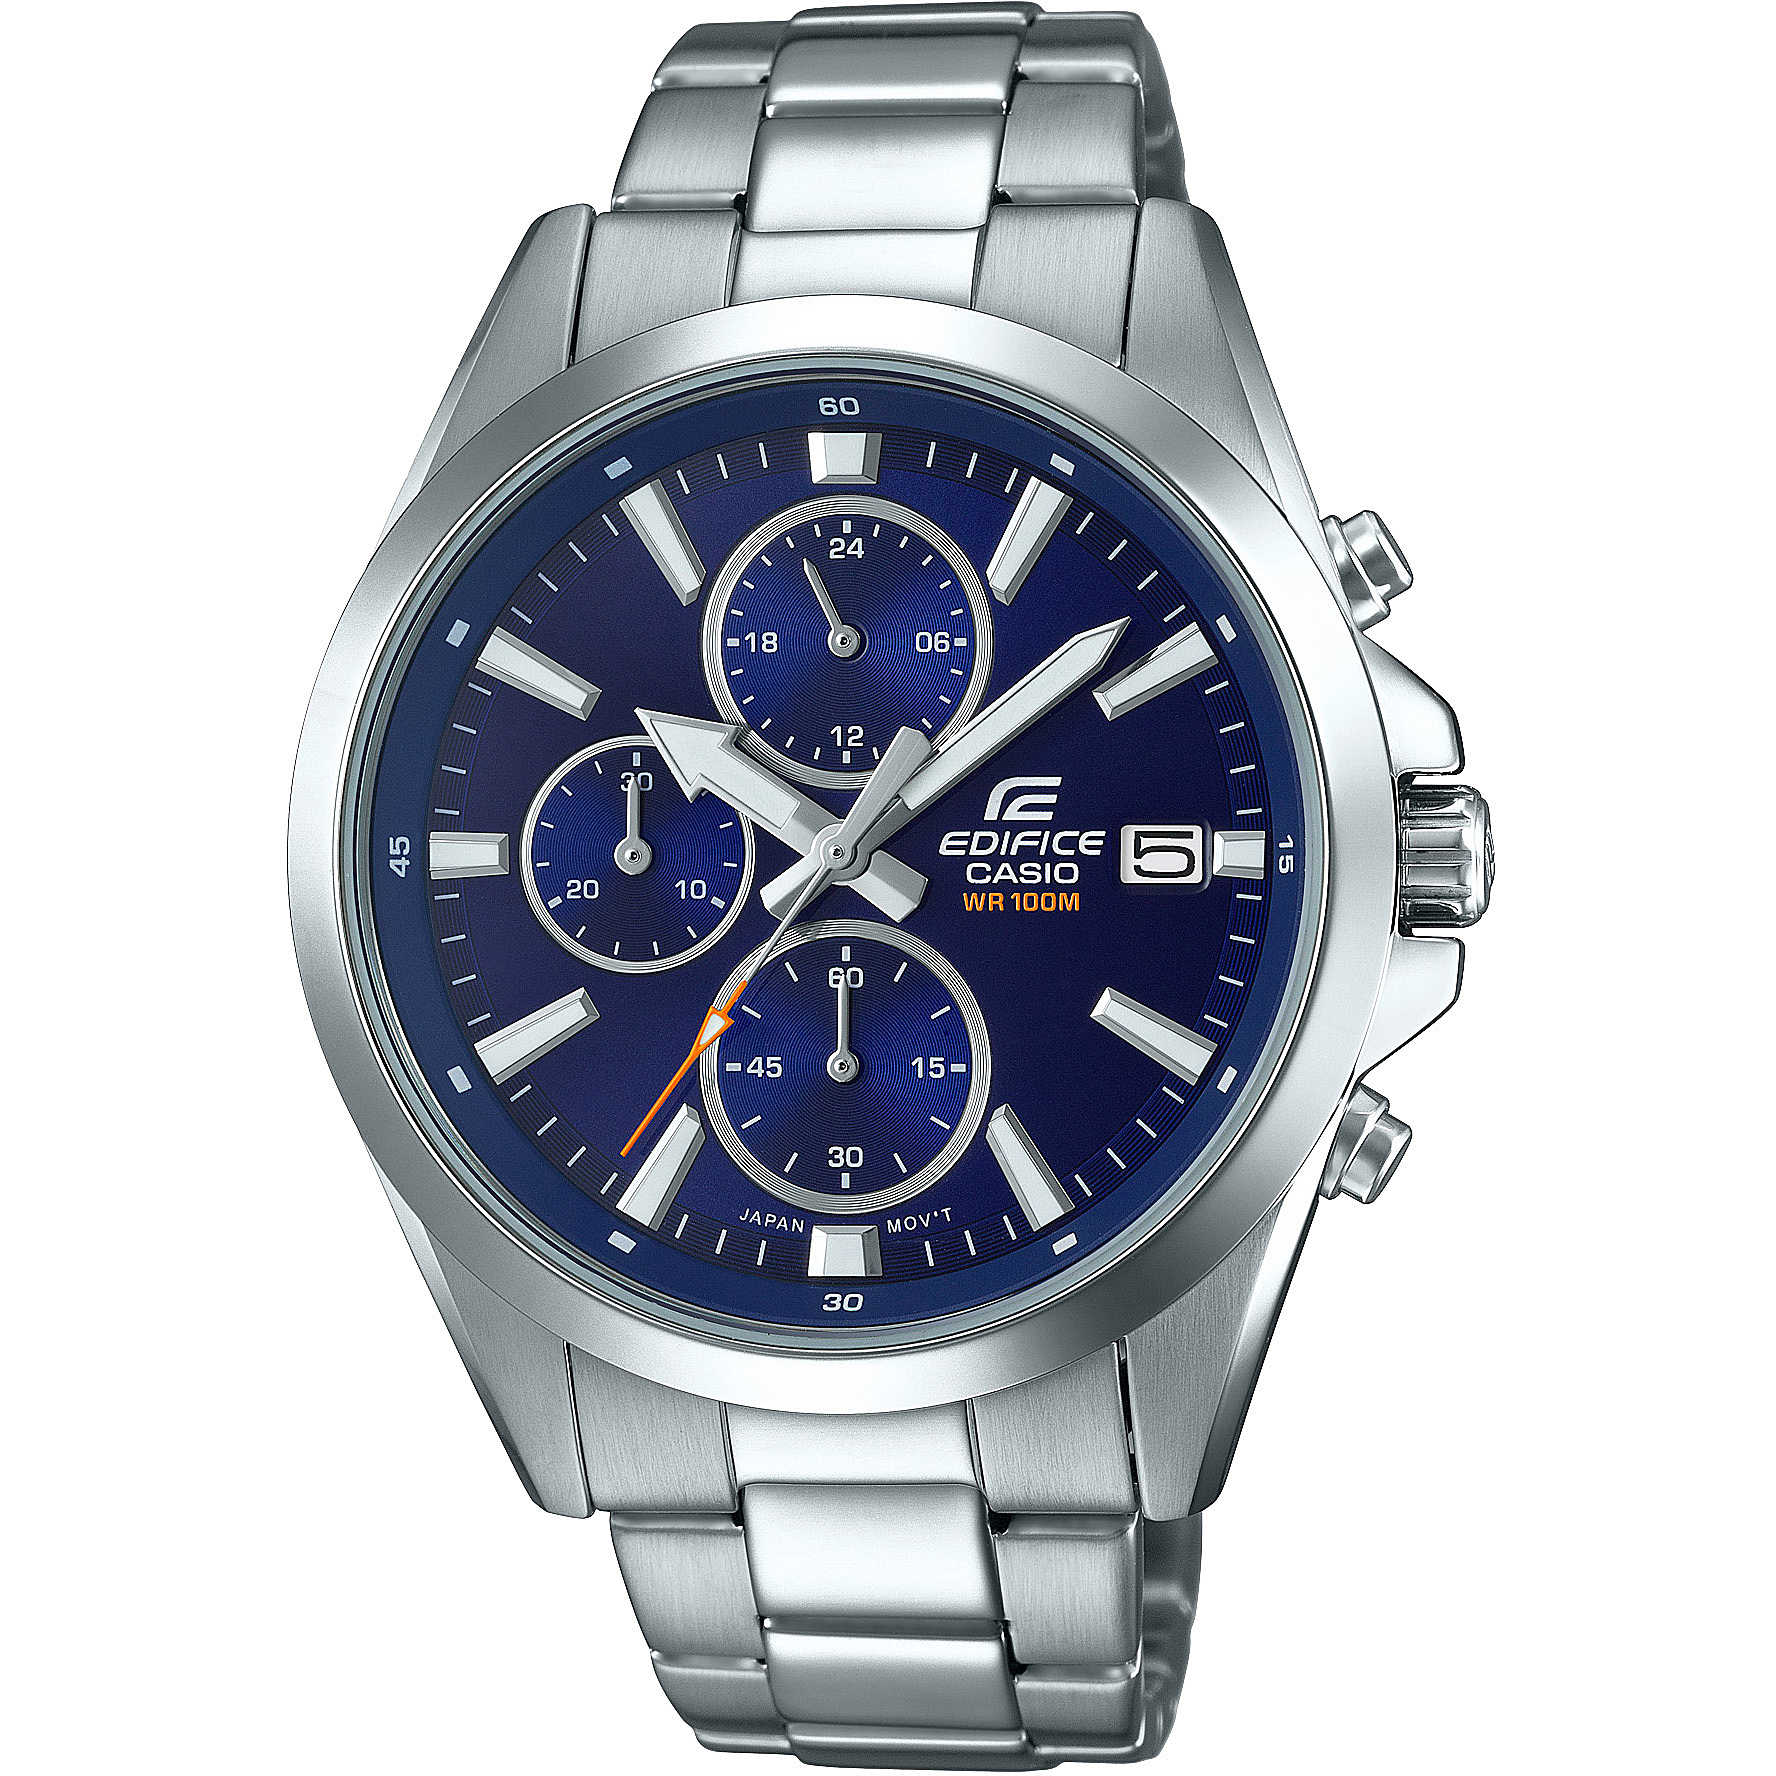 watch digital man Casio Edifice EFV-560D-2AVUEF digitals Casio d6d7c4d3169